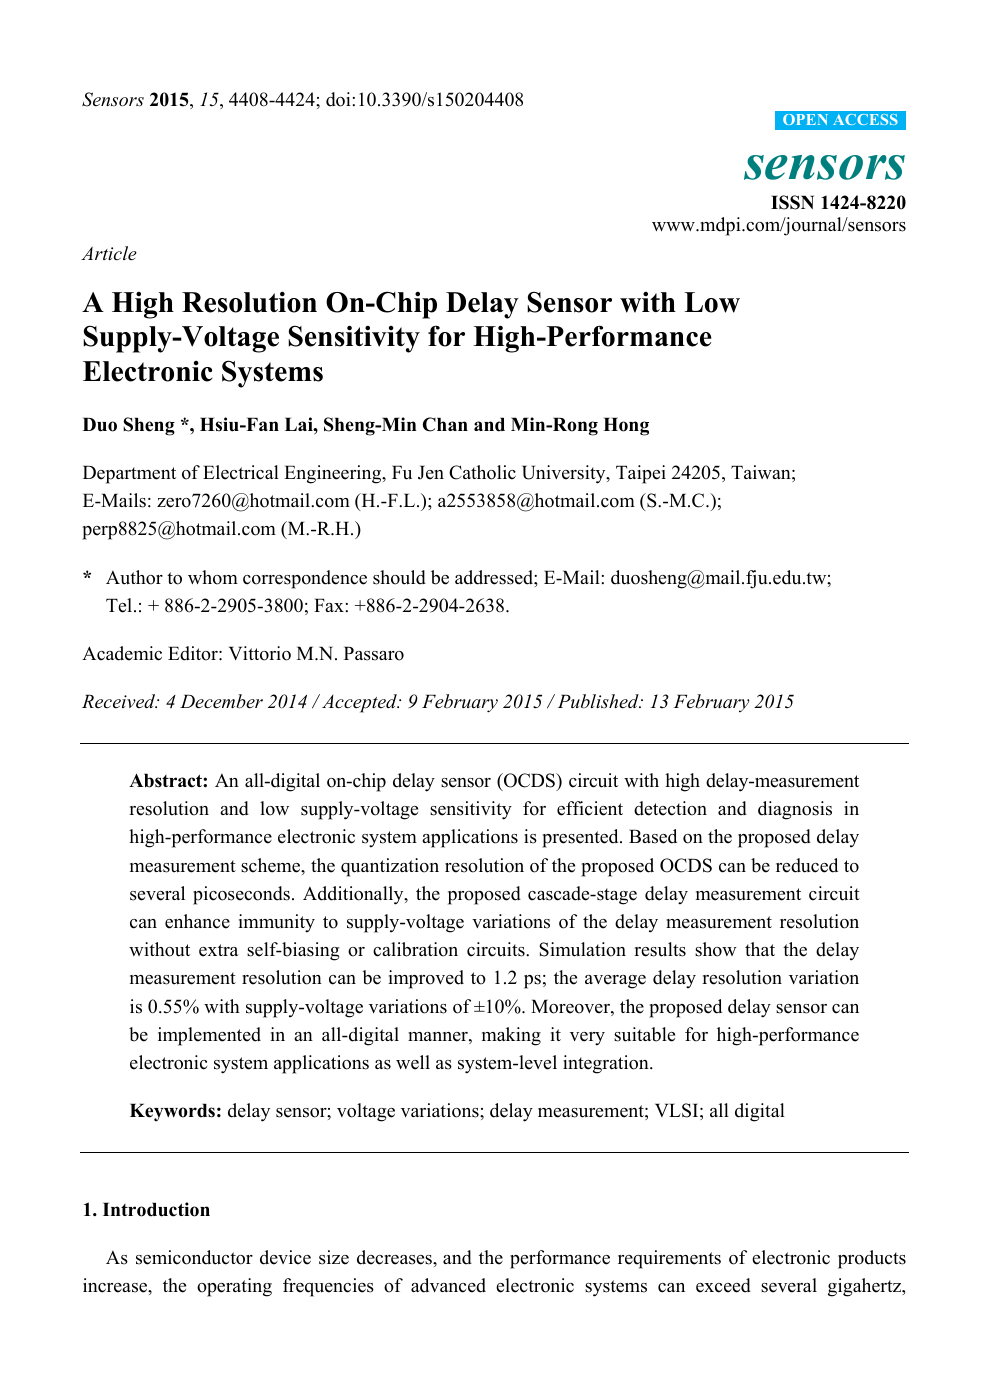 A High Resolution On Chip Delay Sensor With Low Supply Voltage Sensitivity For High Performance Electronic Systems Topic Of Research Paper In Electrical Engineering Electronic Engineering Information Engineering Download Scholarly Article Pdf And Read